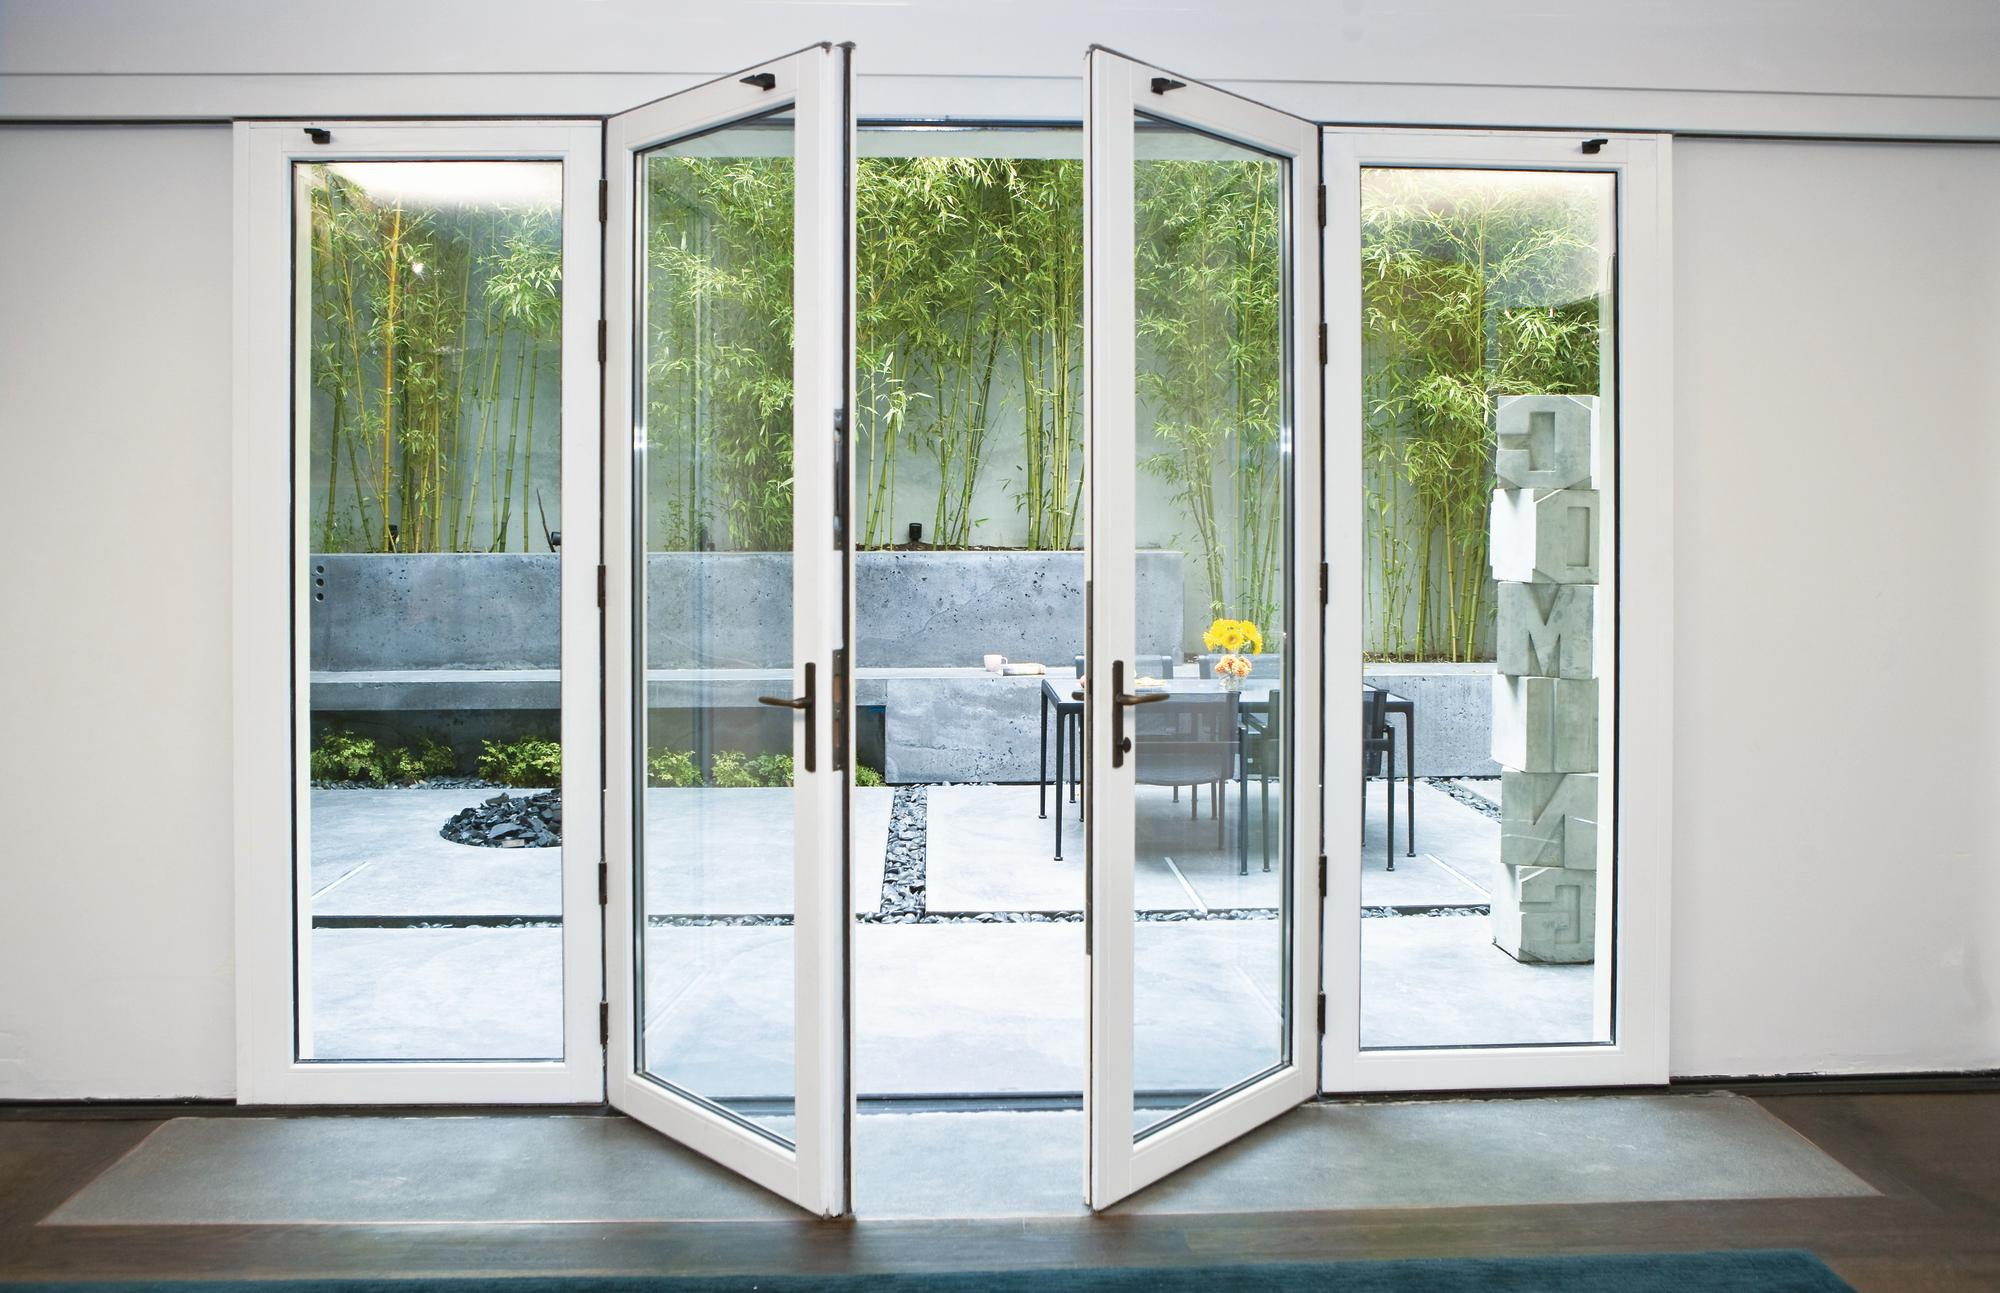 Sliding glass doors open both sides sliding door designs sliding glass doors open both sides door designs planetlyrics Image collections